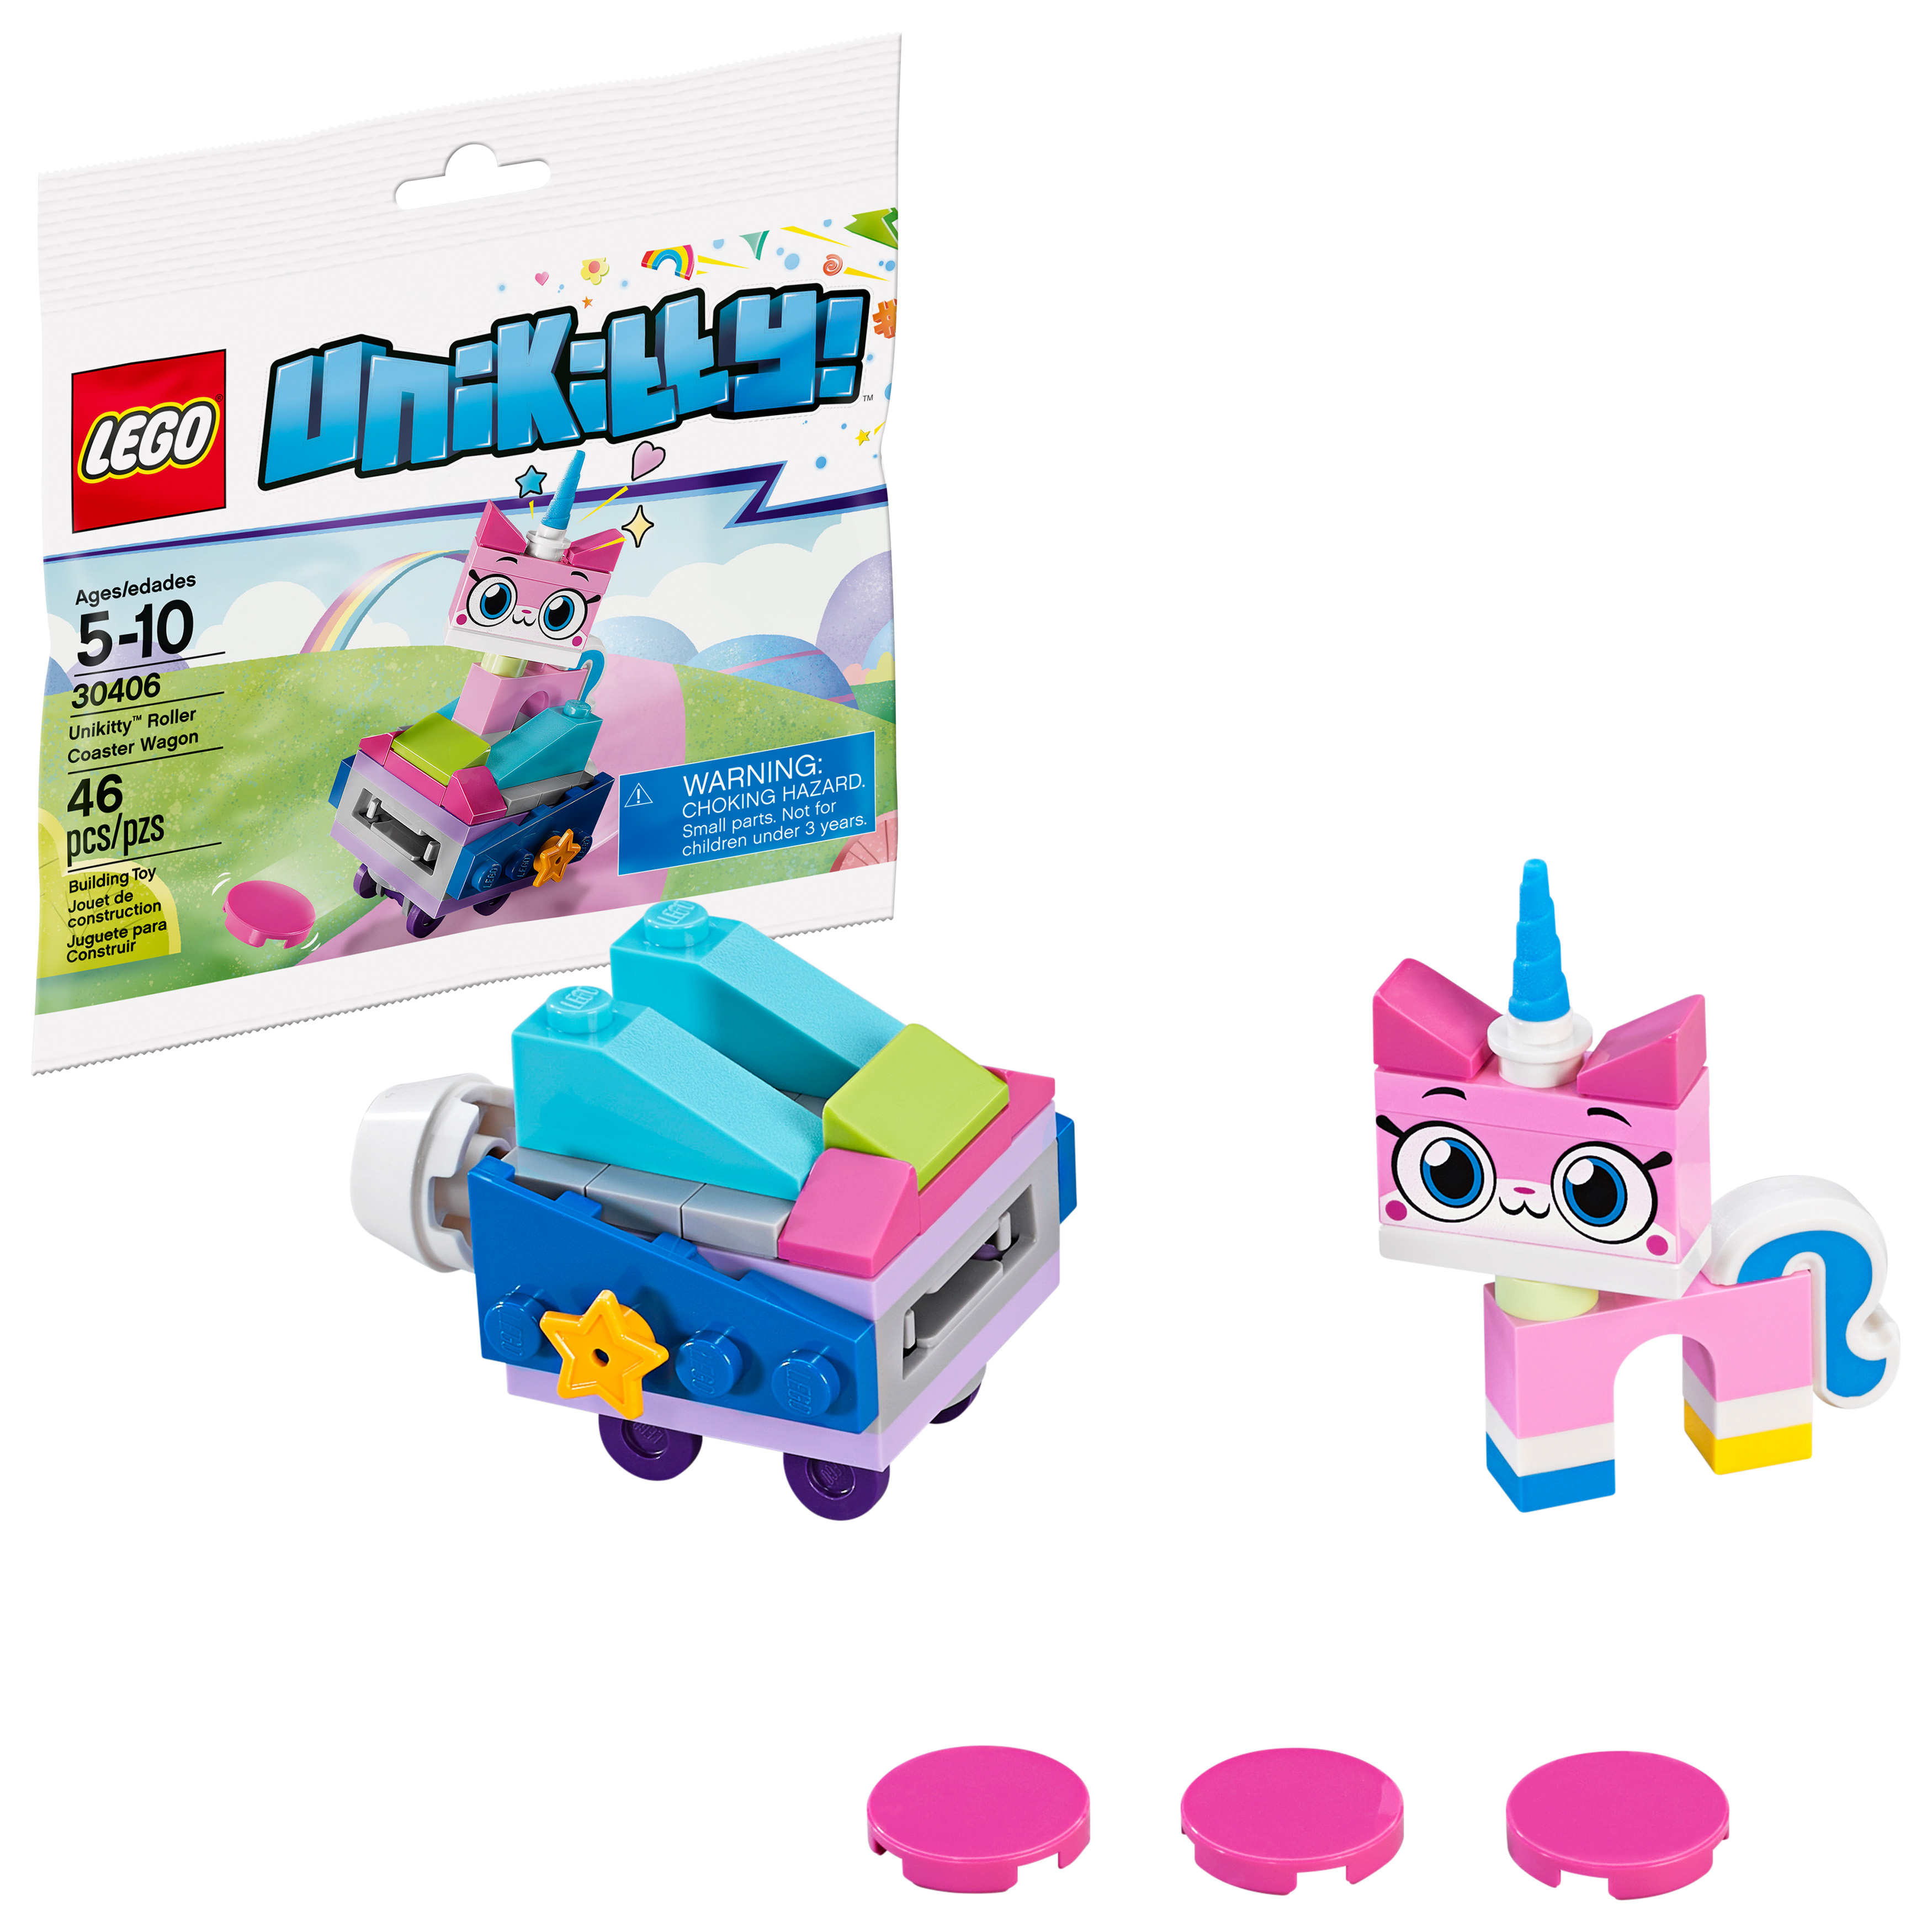 LEGO Recruitment Bags Unikitty™ Roller Coaster Wagon 30406